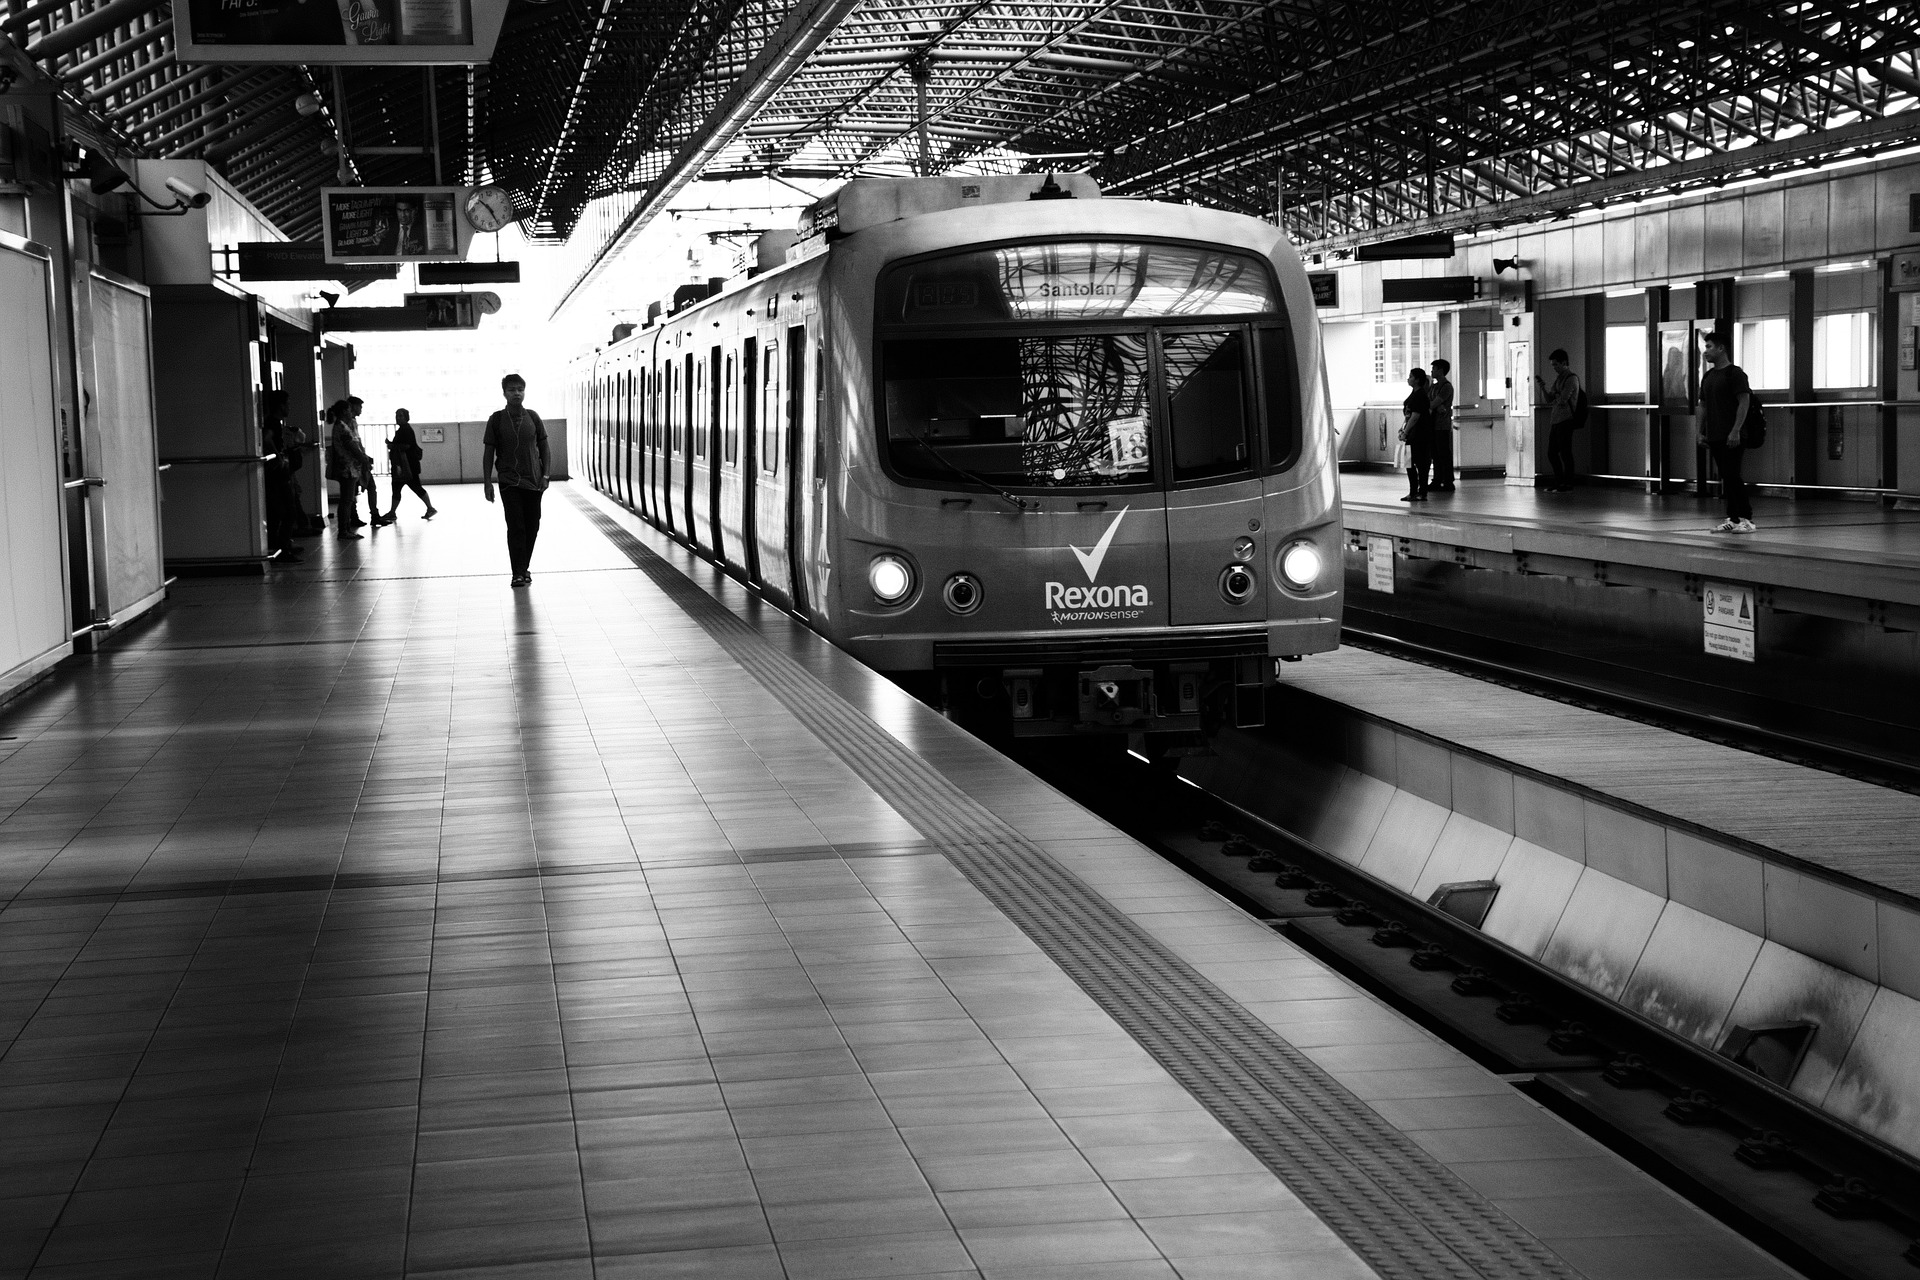 Metro train in Manila, Philippines